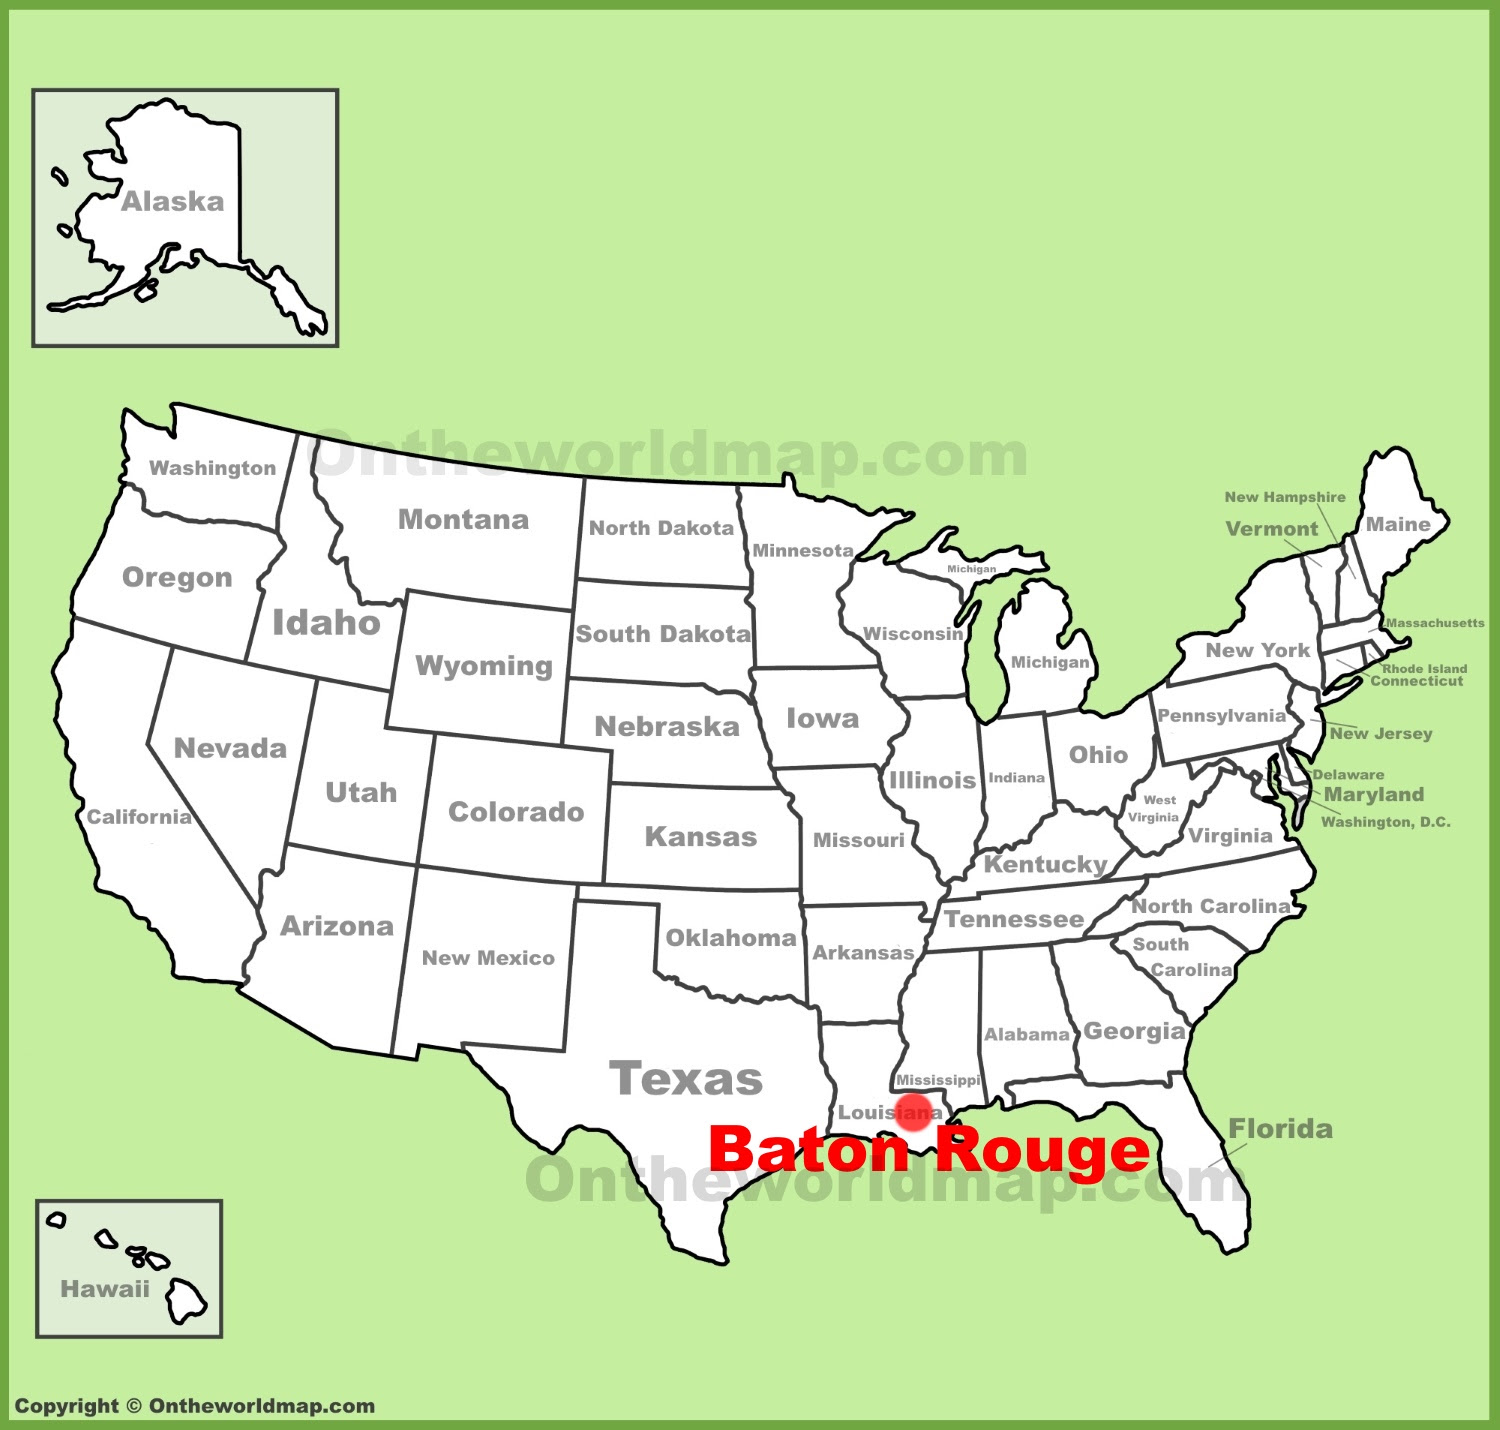 baton rouge location on the us map